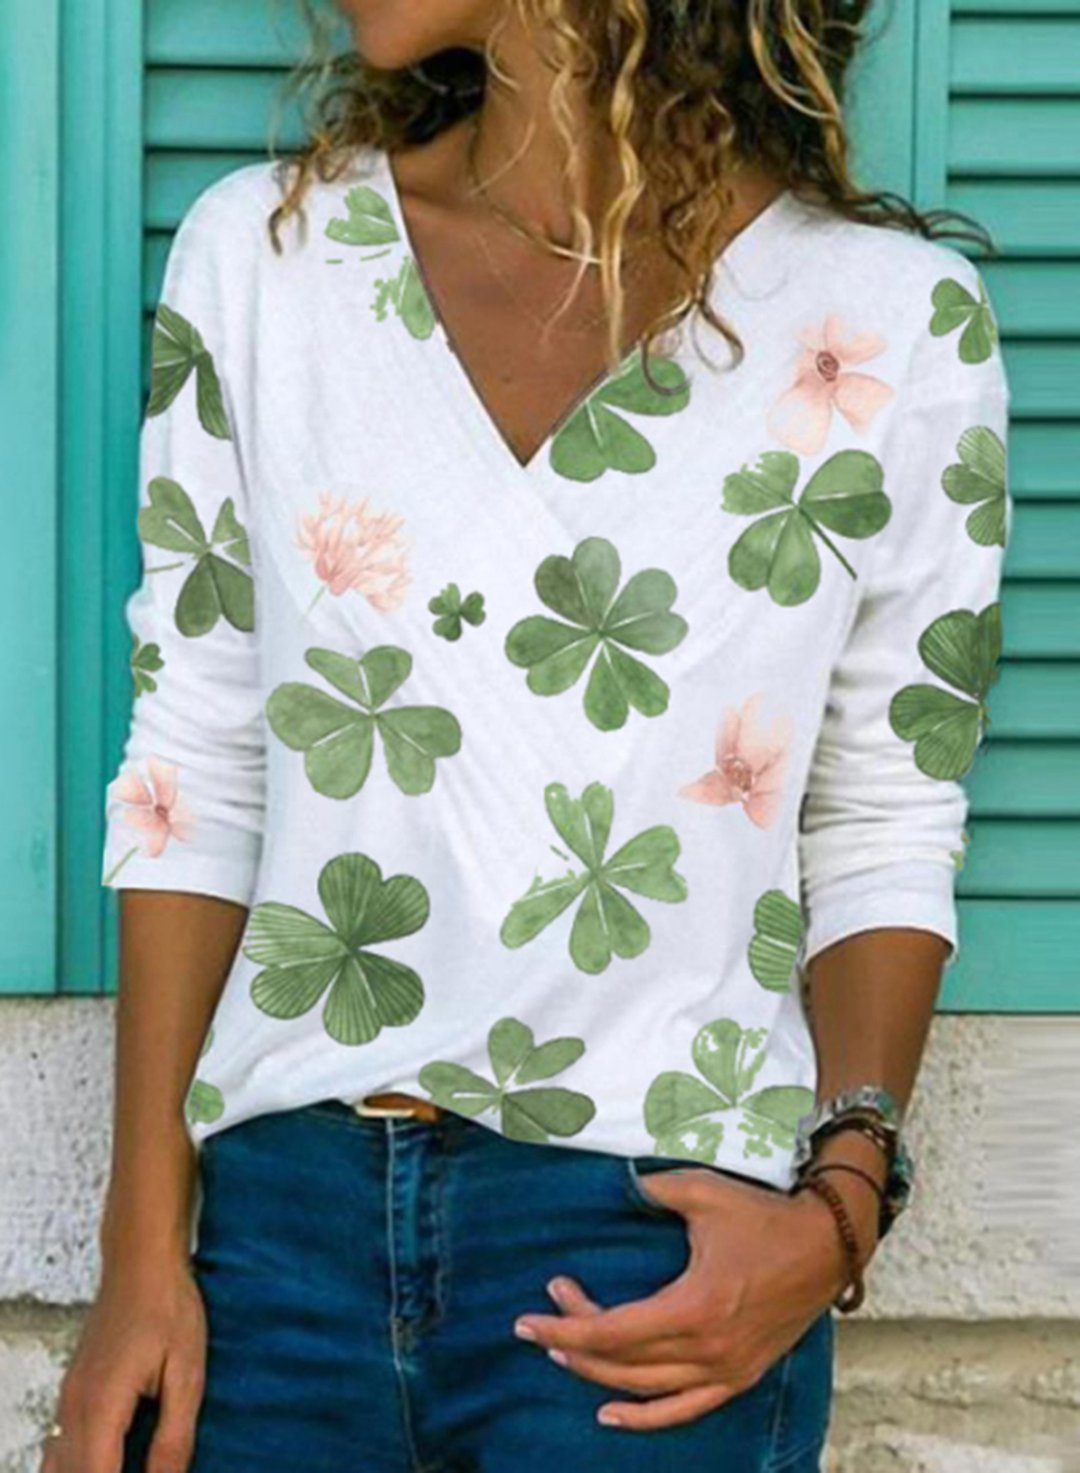 White Women's T-shirts Fruits & Plants V Neck Long Sleeve Vintage Daily T-shirts LC2517632-1